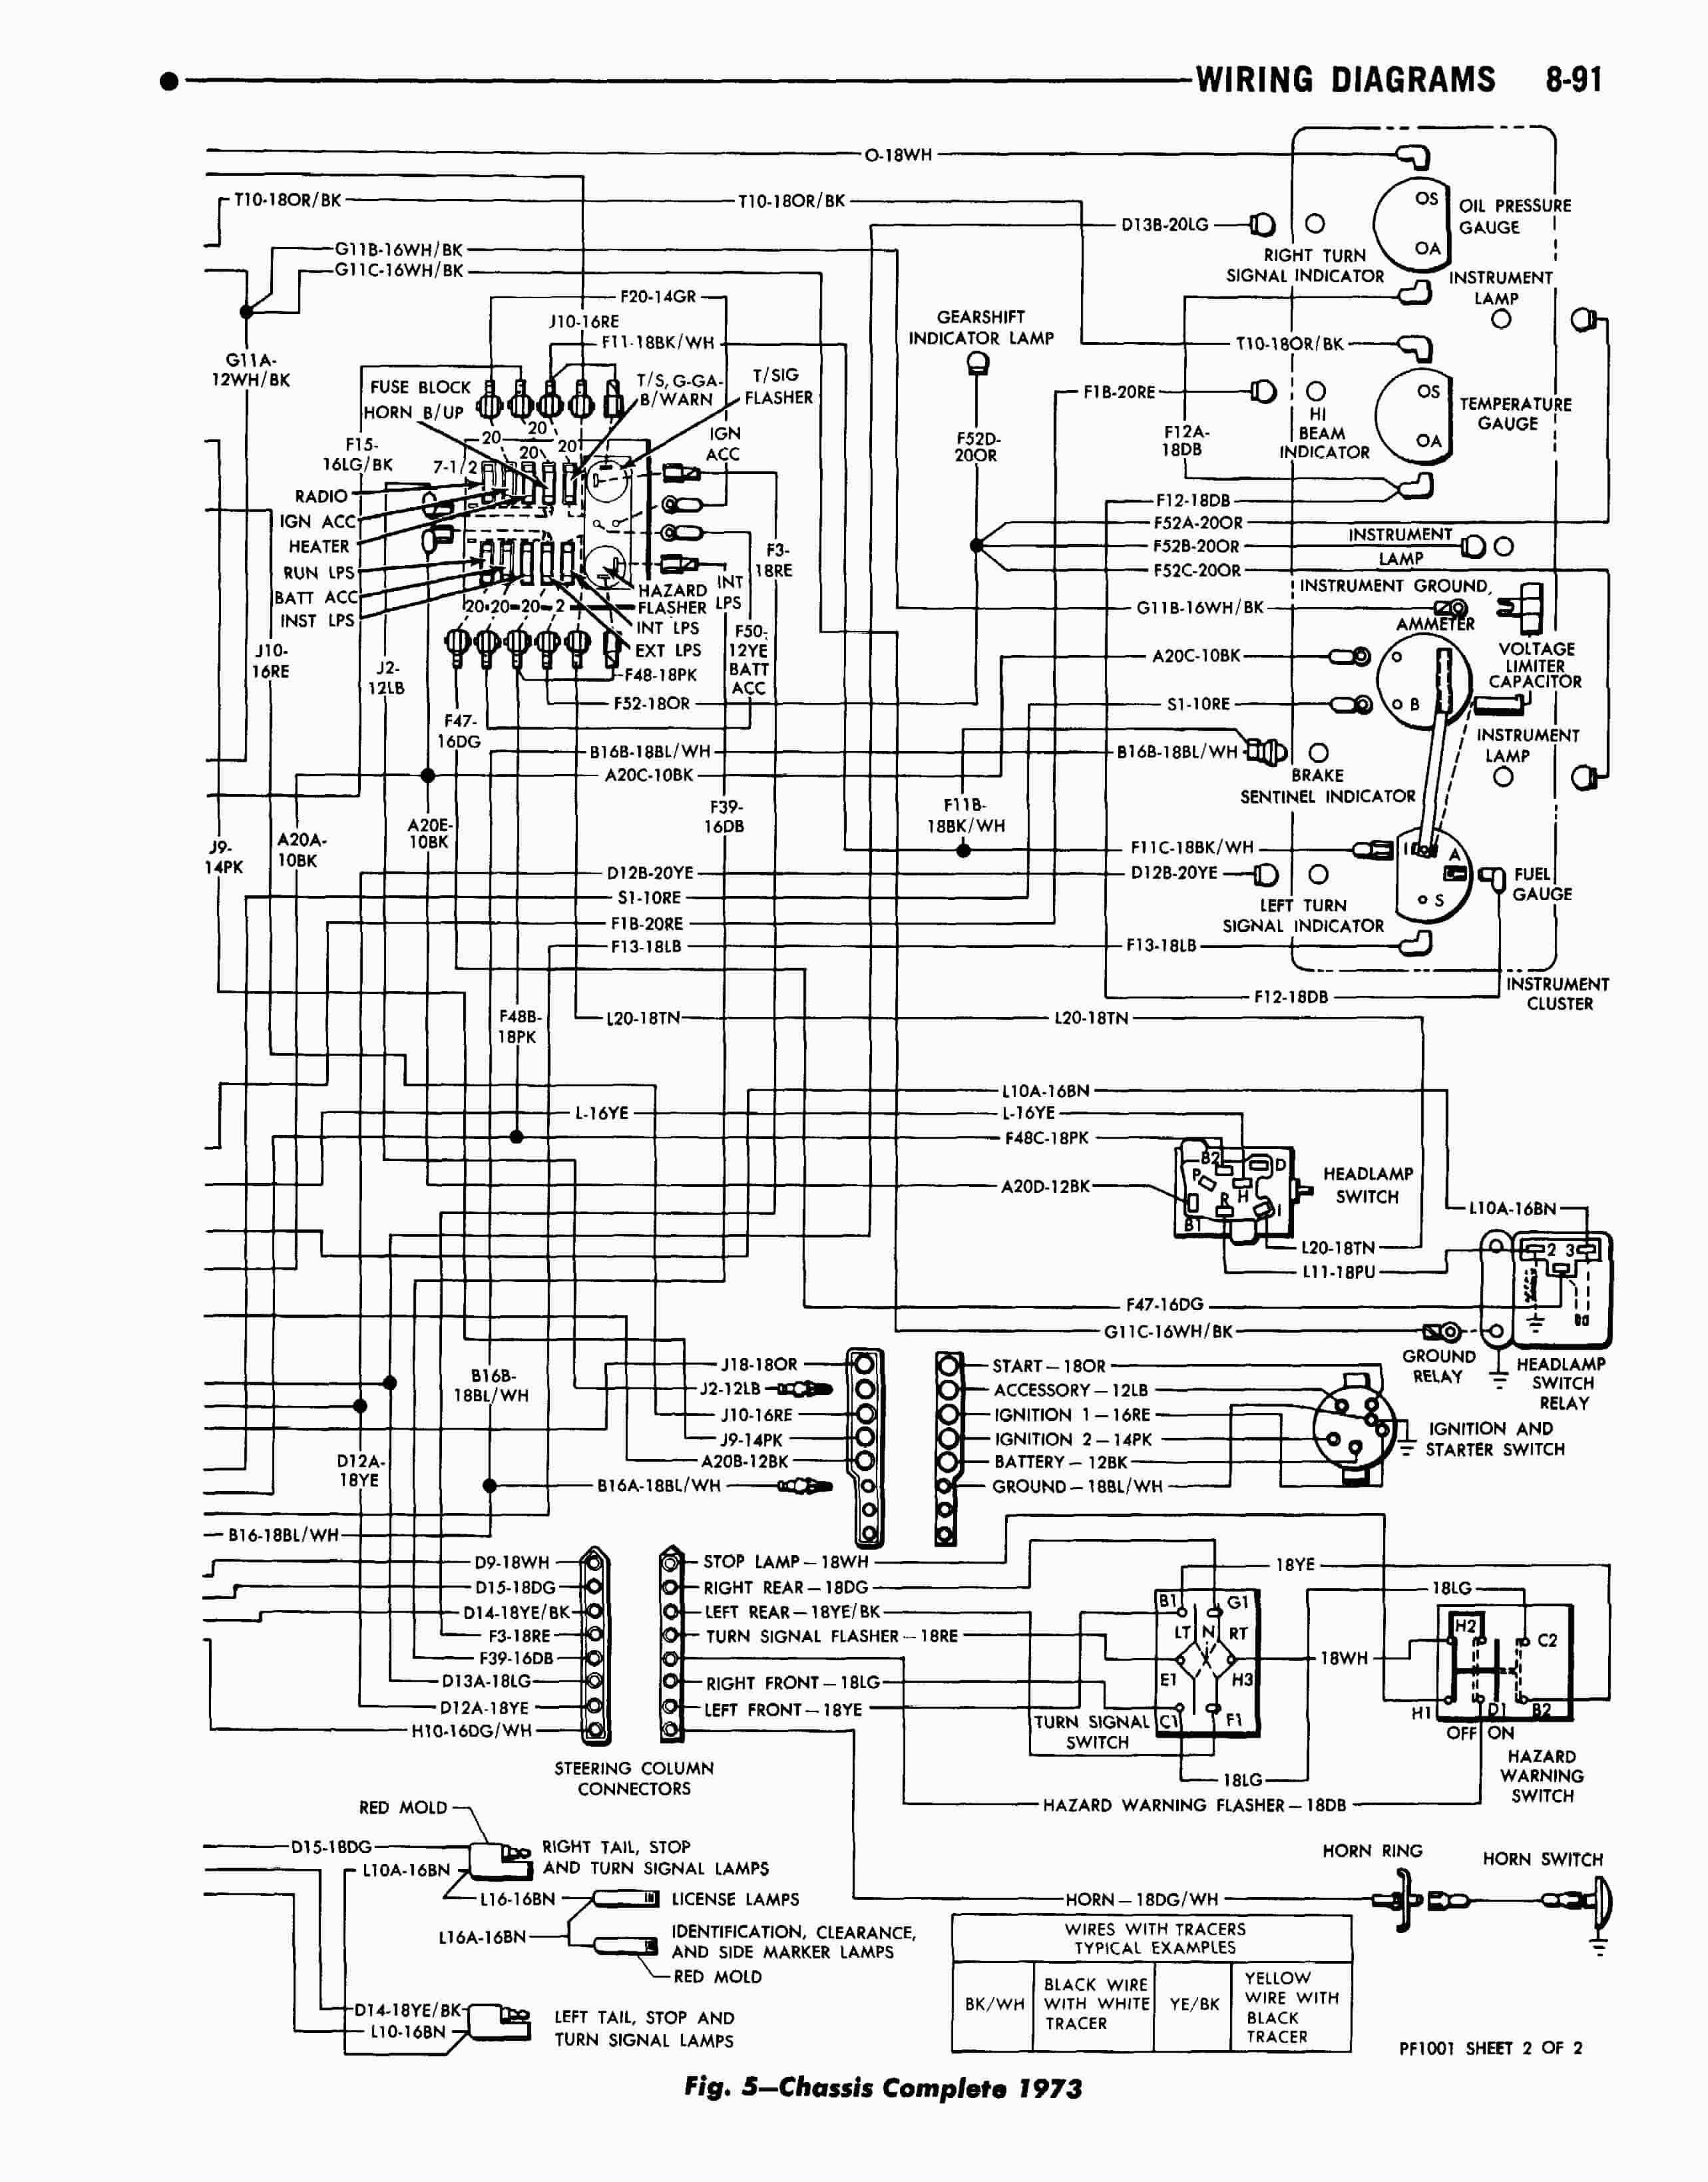 Typical Wiring Diagram Inspirational 1995 Fleetwood Rv Wiring Diagram Wiring Diagram